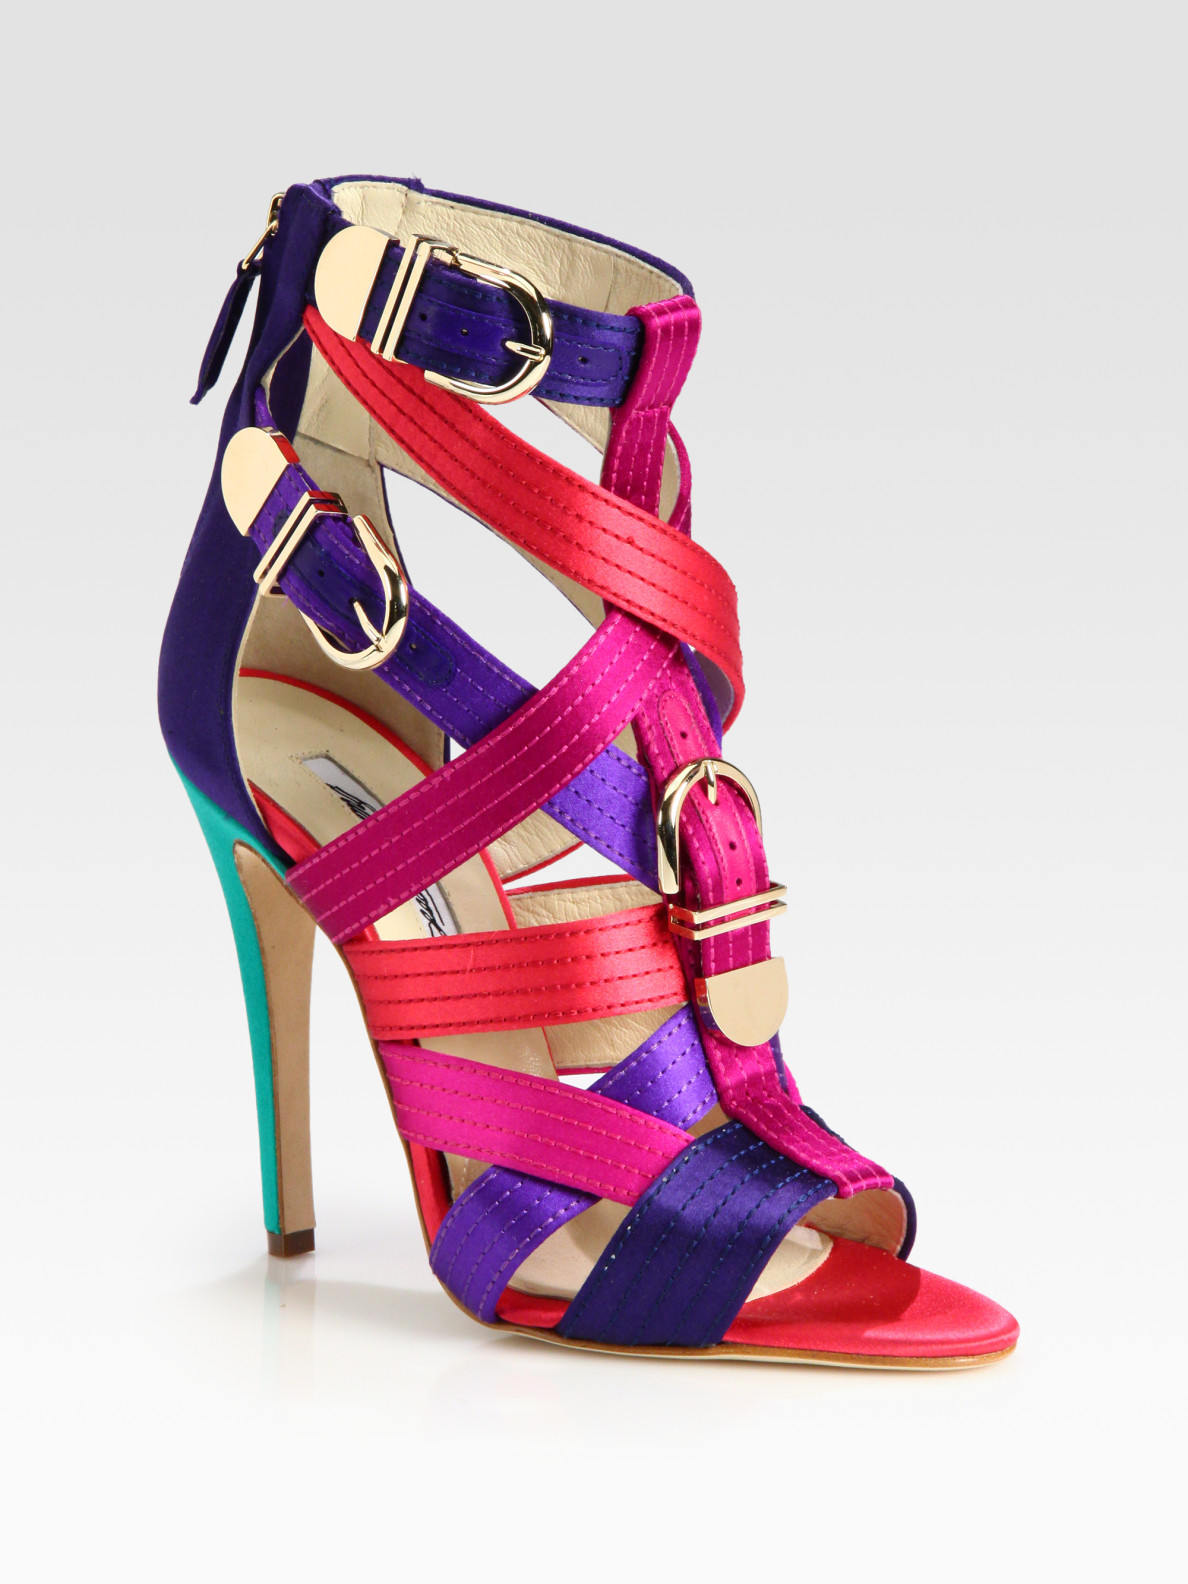 3a3deb34239 Lyst - Brian Atwood Strappy Multicolored Satin Buckle Sandals in Purple